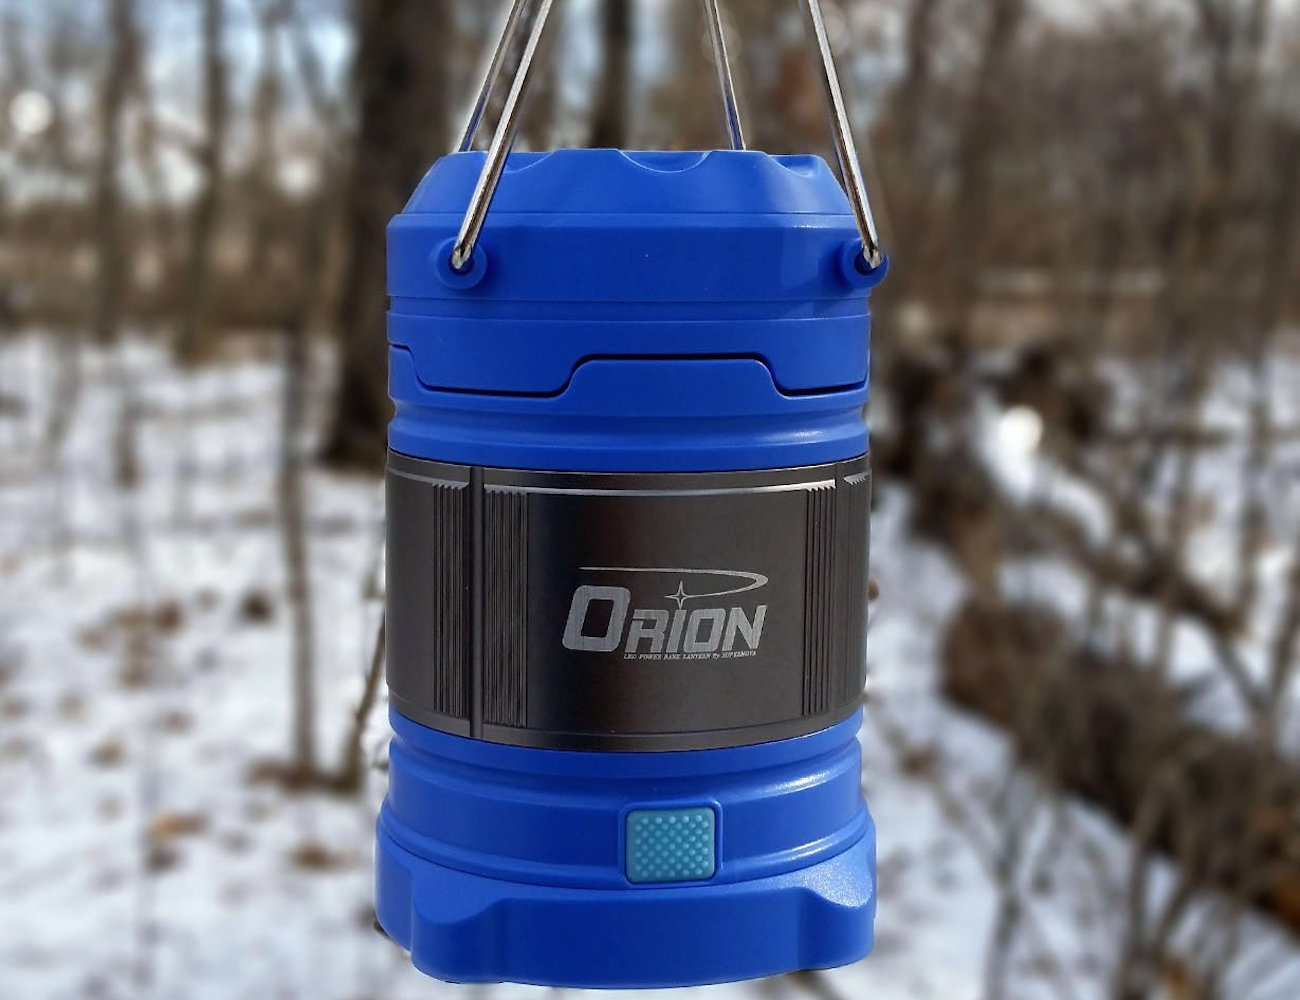 The+Orion+%26%238211%3B+Ultimate+Survival+LED+Lantern+And+Power+Bank+By+Supernova